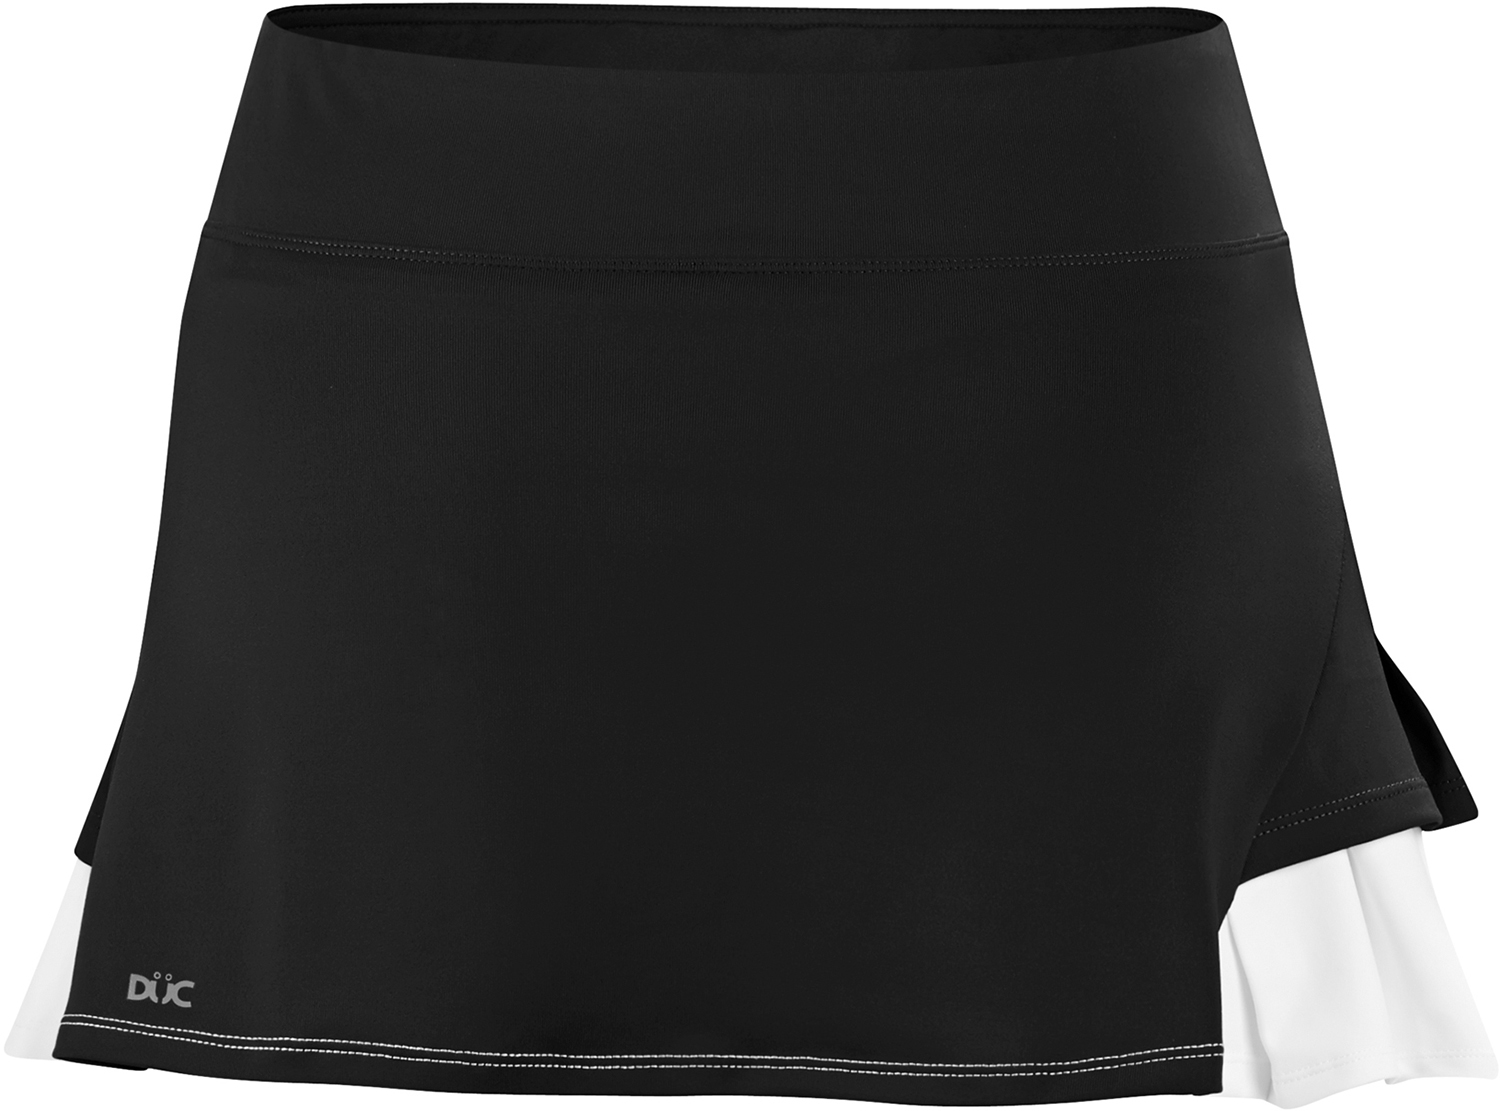 DUC Flirt Women's Tennis Skirt (Black)